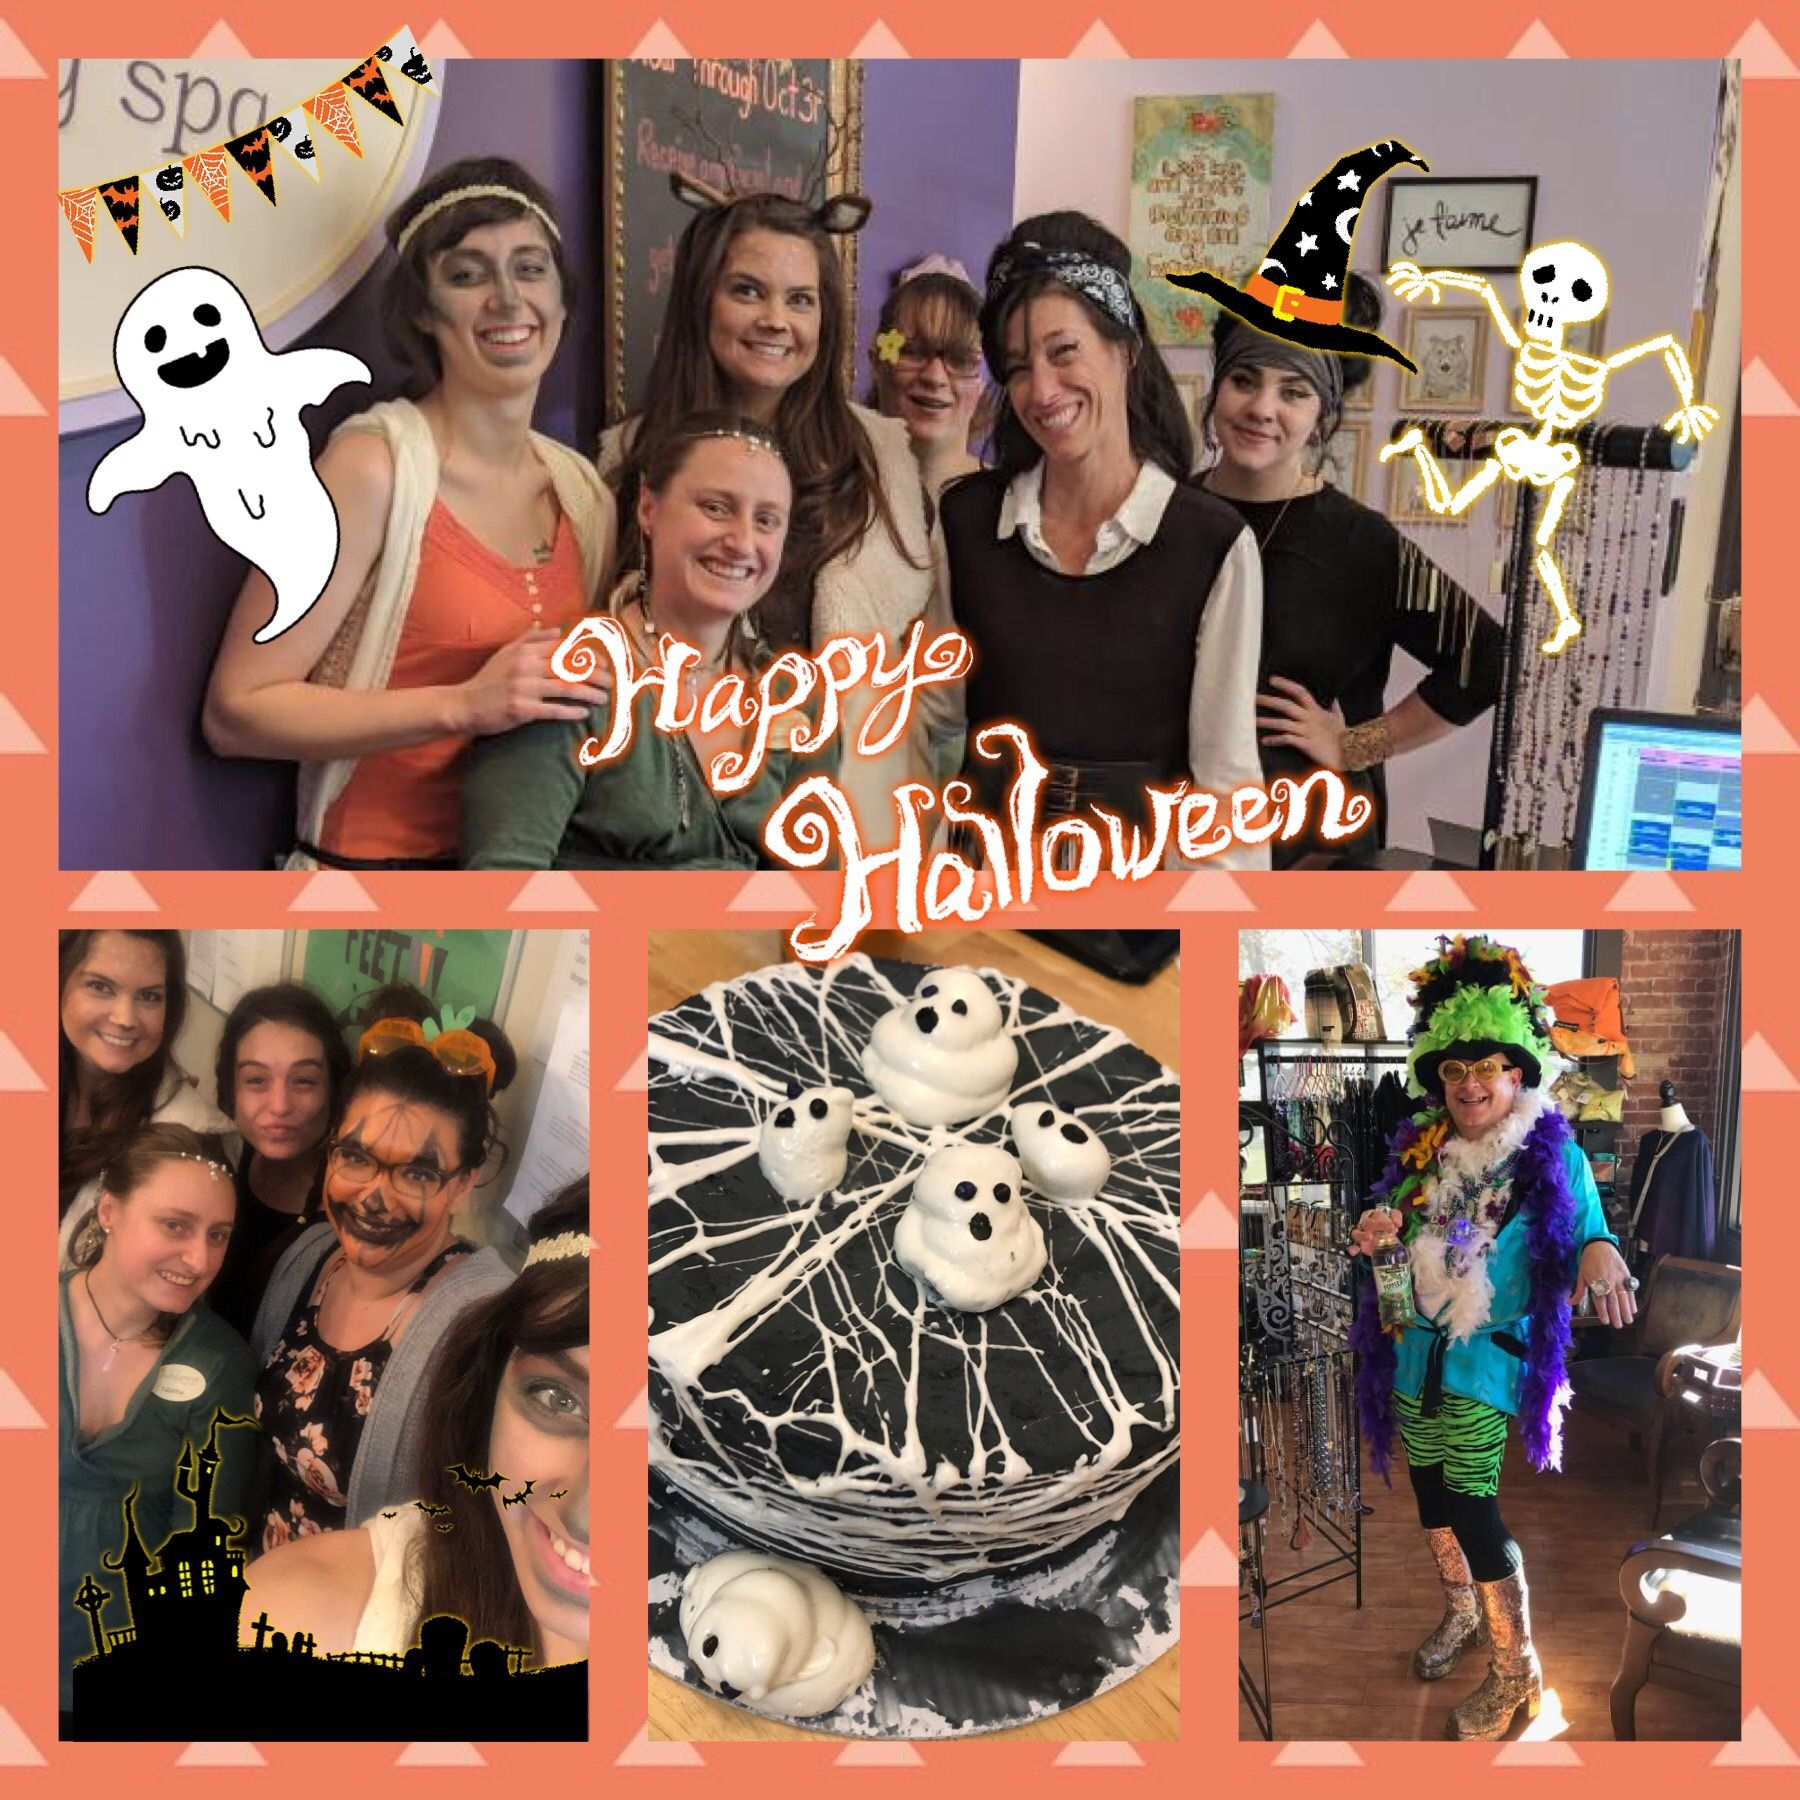 The holiday is intended to remember the dead saints and other souls; We Hope You Had A Wonderful Halloween We Dressed Up Now It S Your Turn To Show Us Your Costumes Halloween Costumes I Independence Day Holiday Halloween